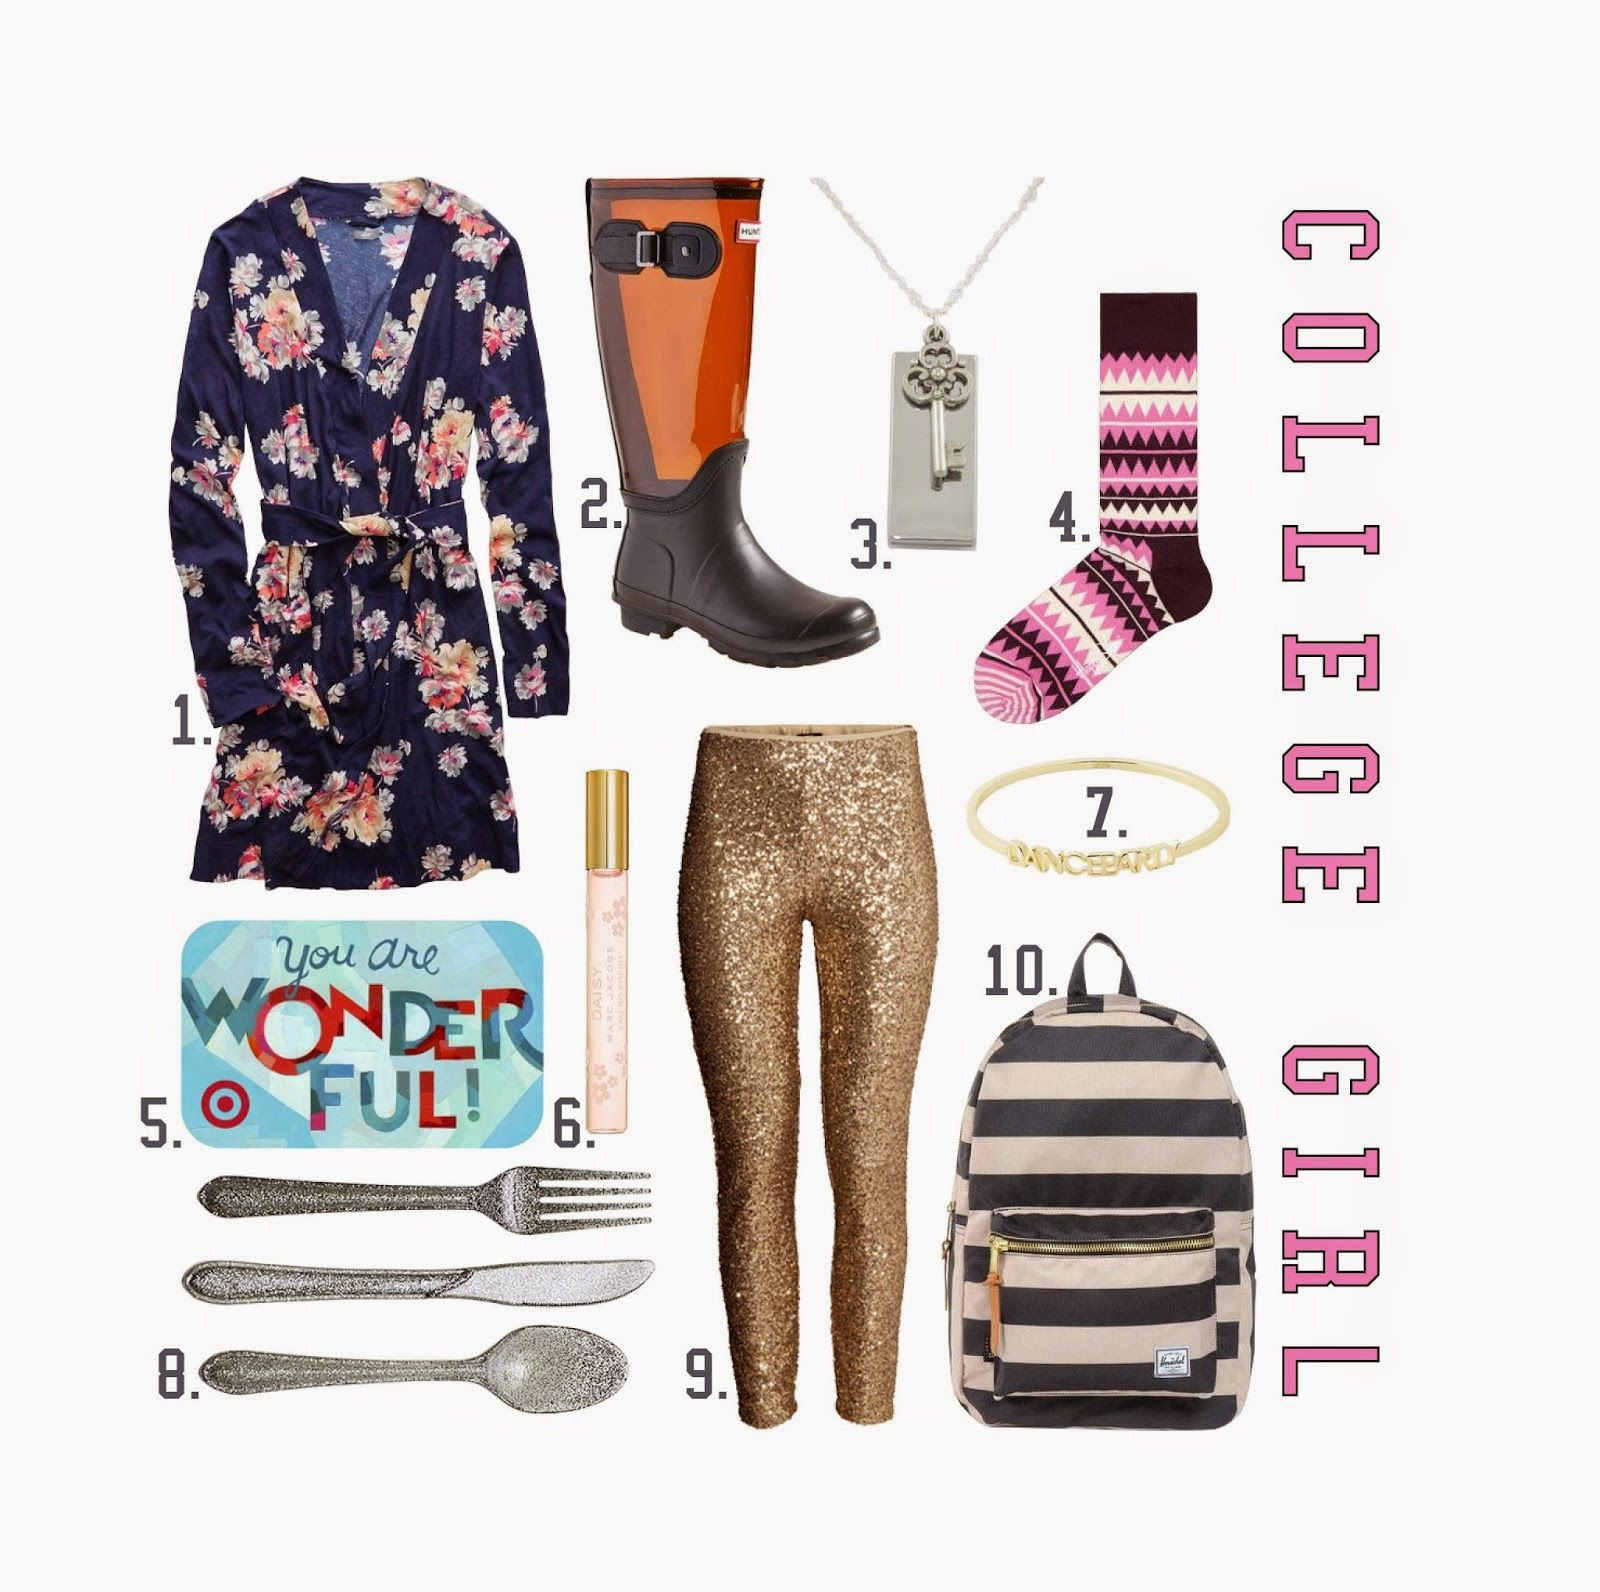 college girl gift guide